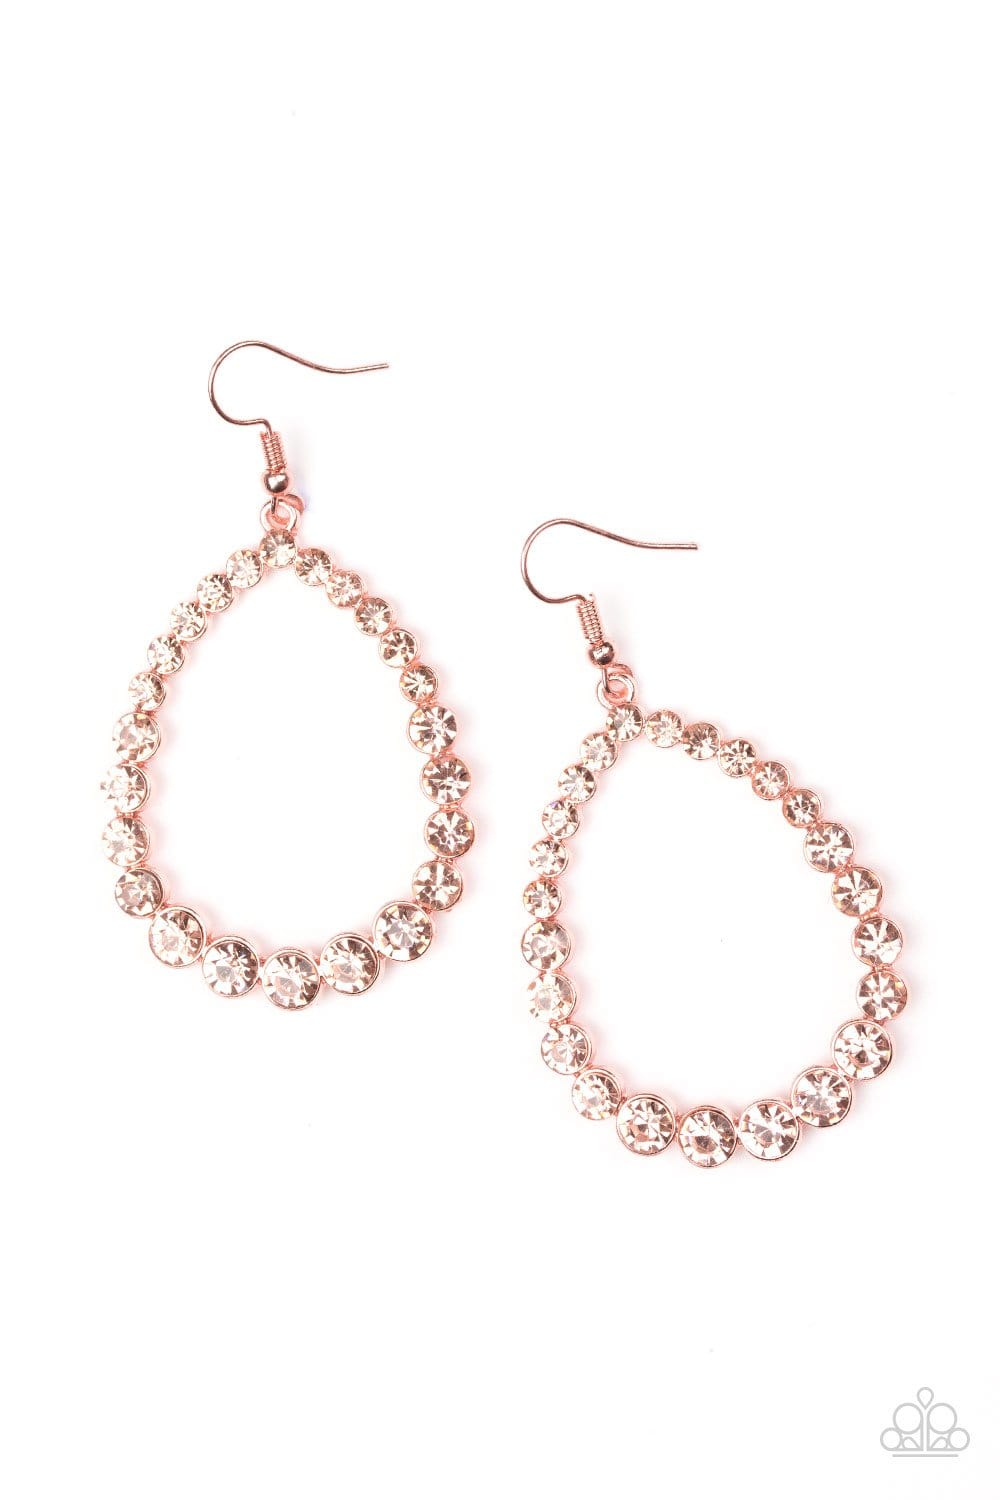 Rise and Sparkle! - Copper - Jewels N' Thingz Boutique